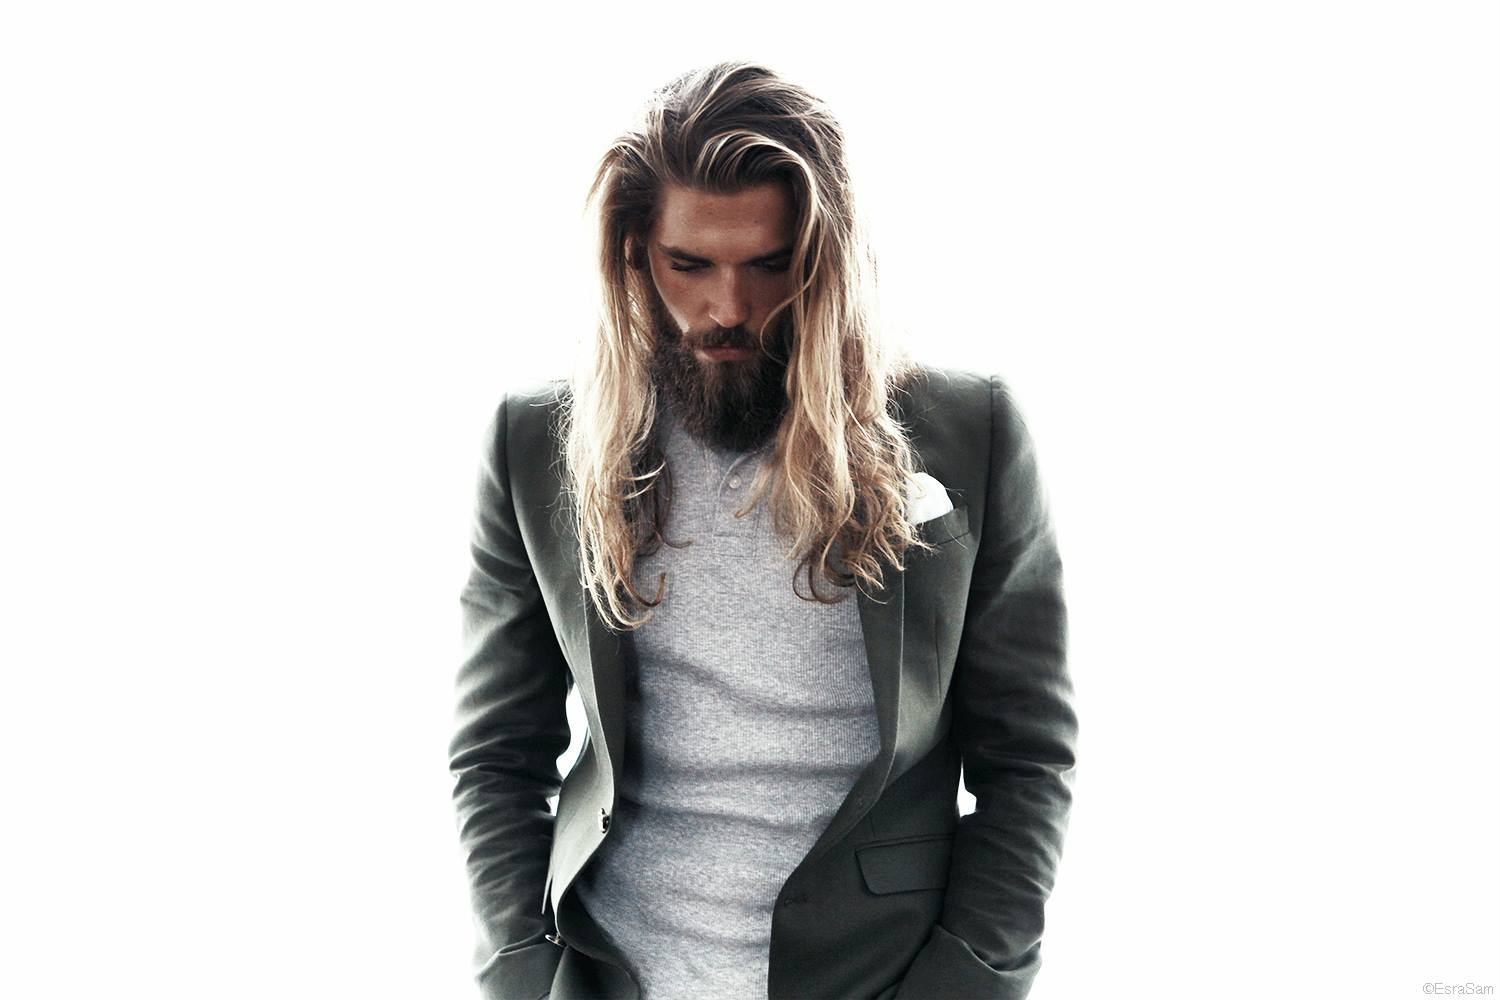 Astonishing 20 Awesome Long Hairstyles For Men Hairstyle Inspiration Daily Dogsangcom